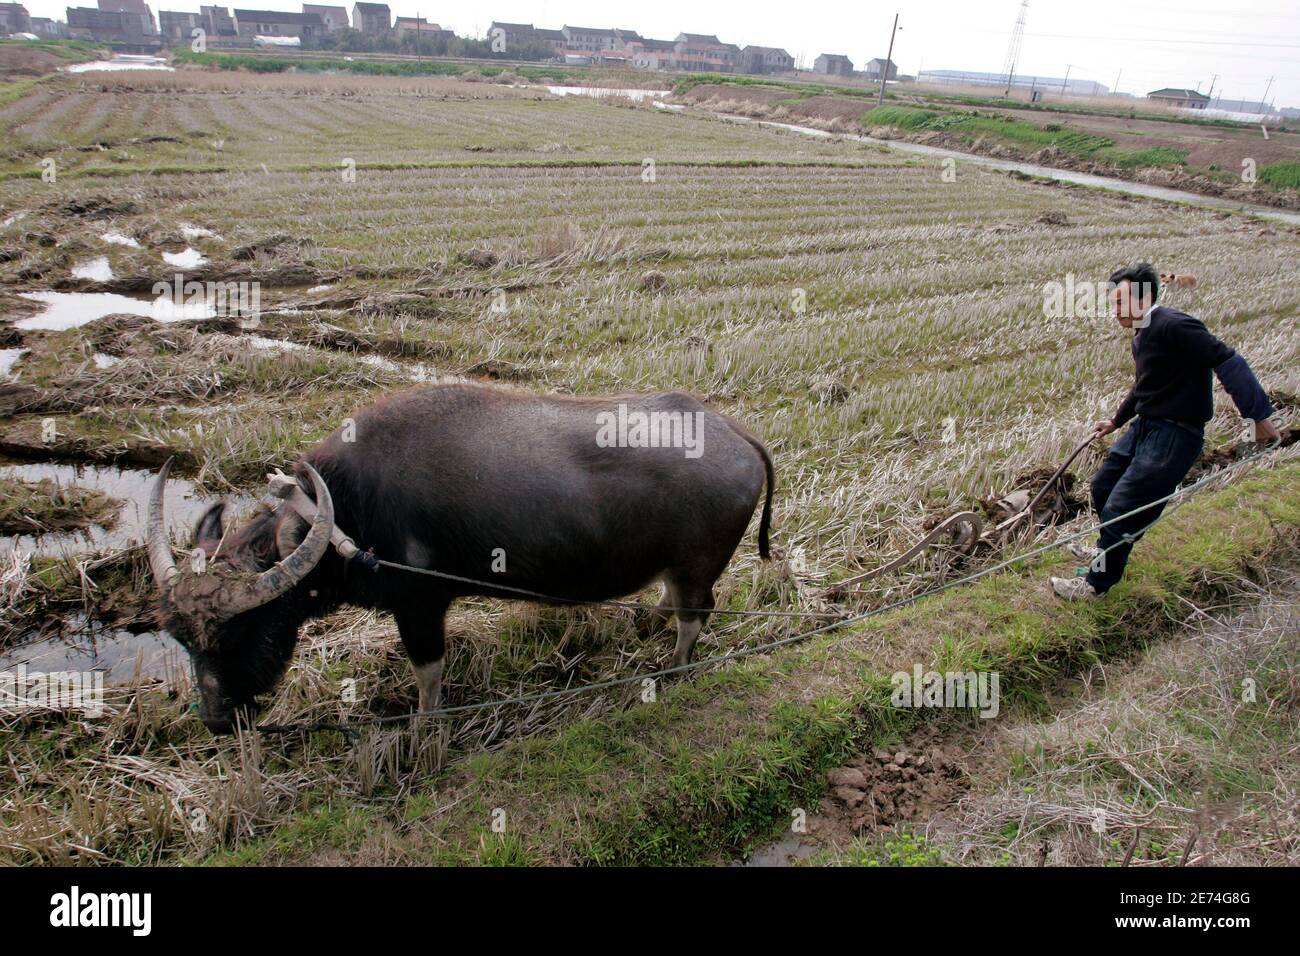 A farmer works reclaimed land by buffalo in Nanhui district on the outskirts of Shanghai February 28, 2007. Chinese leaders Hu Jintao and Wen Jiabao have made the countryside a political priority. They abolished an ancient grains tax, promised free schooling, and are offering financial aid and subsidies for seeds and infrastructure.    To match feature CHINA-PARLIAMENT-COUNTRYSIDE       REUTERS/Aly Song (CHINA) Stock Photo